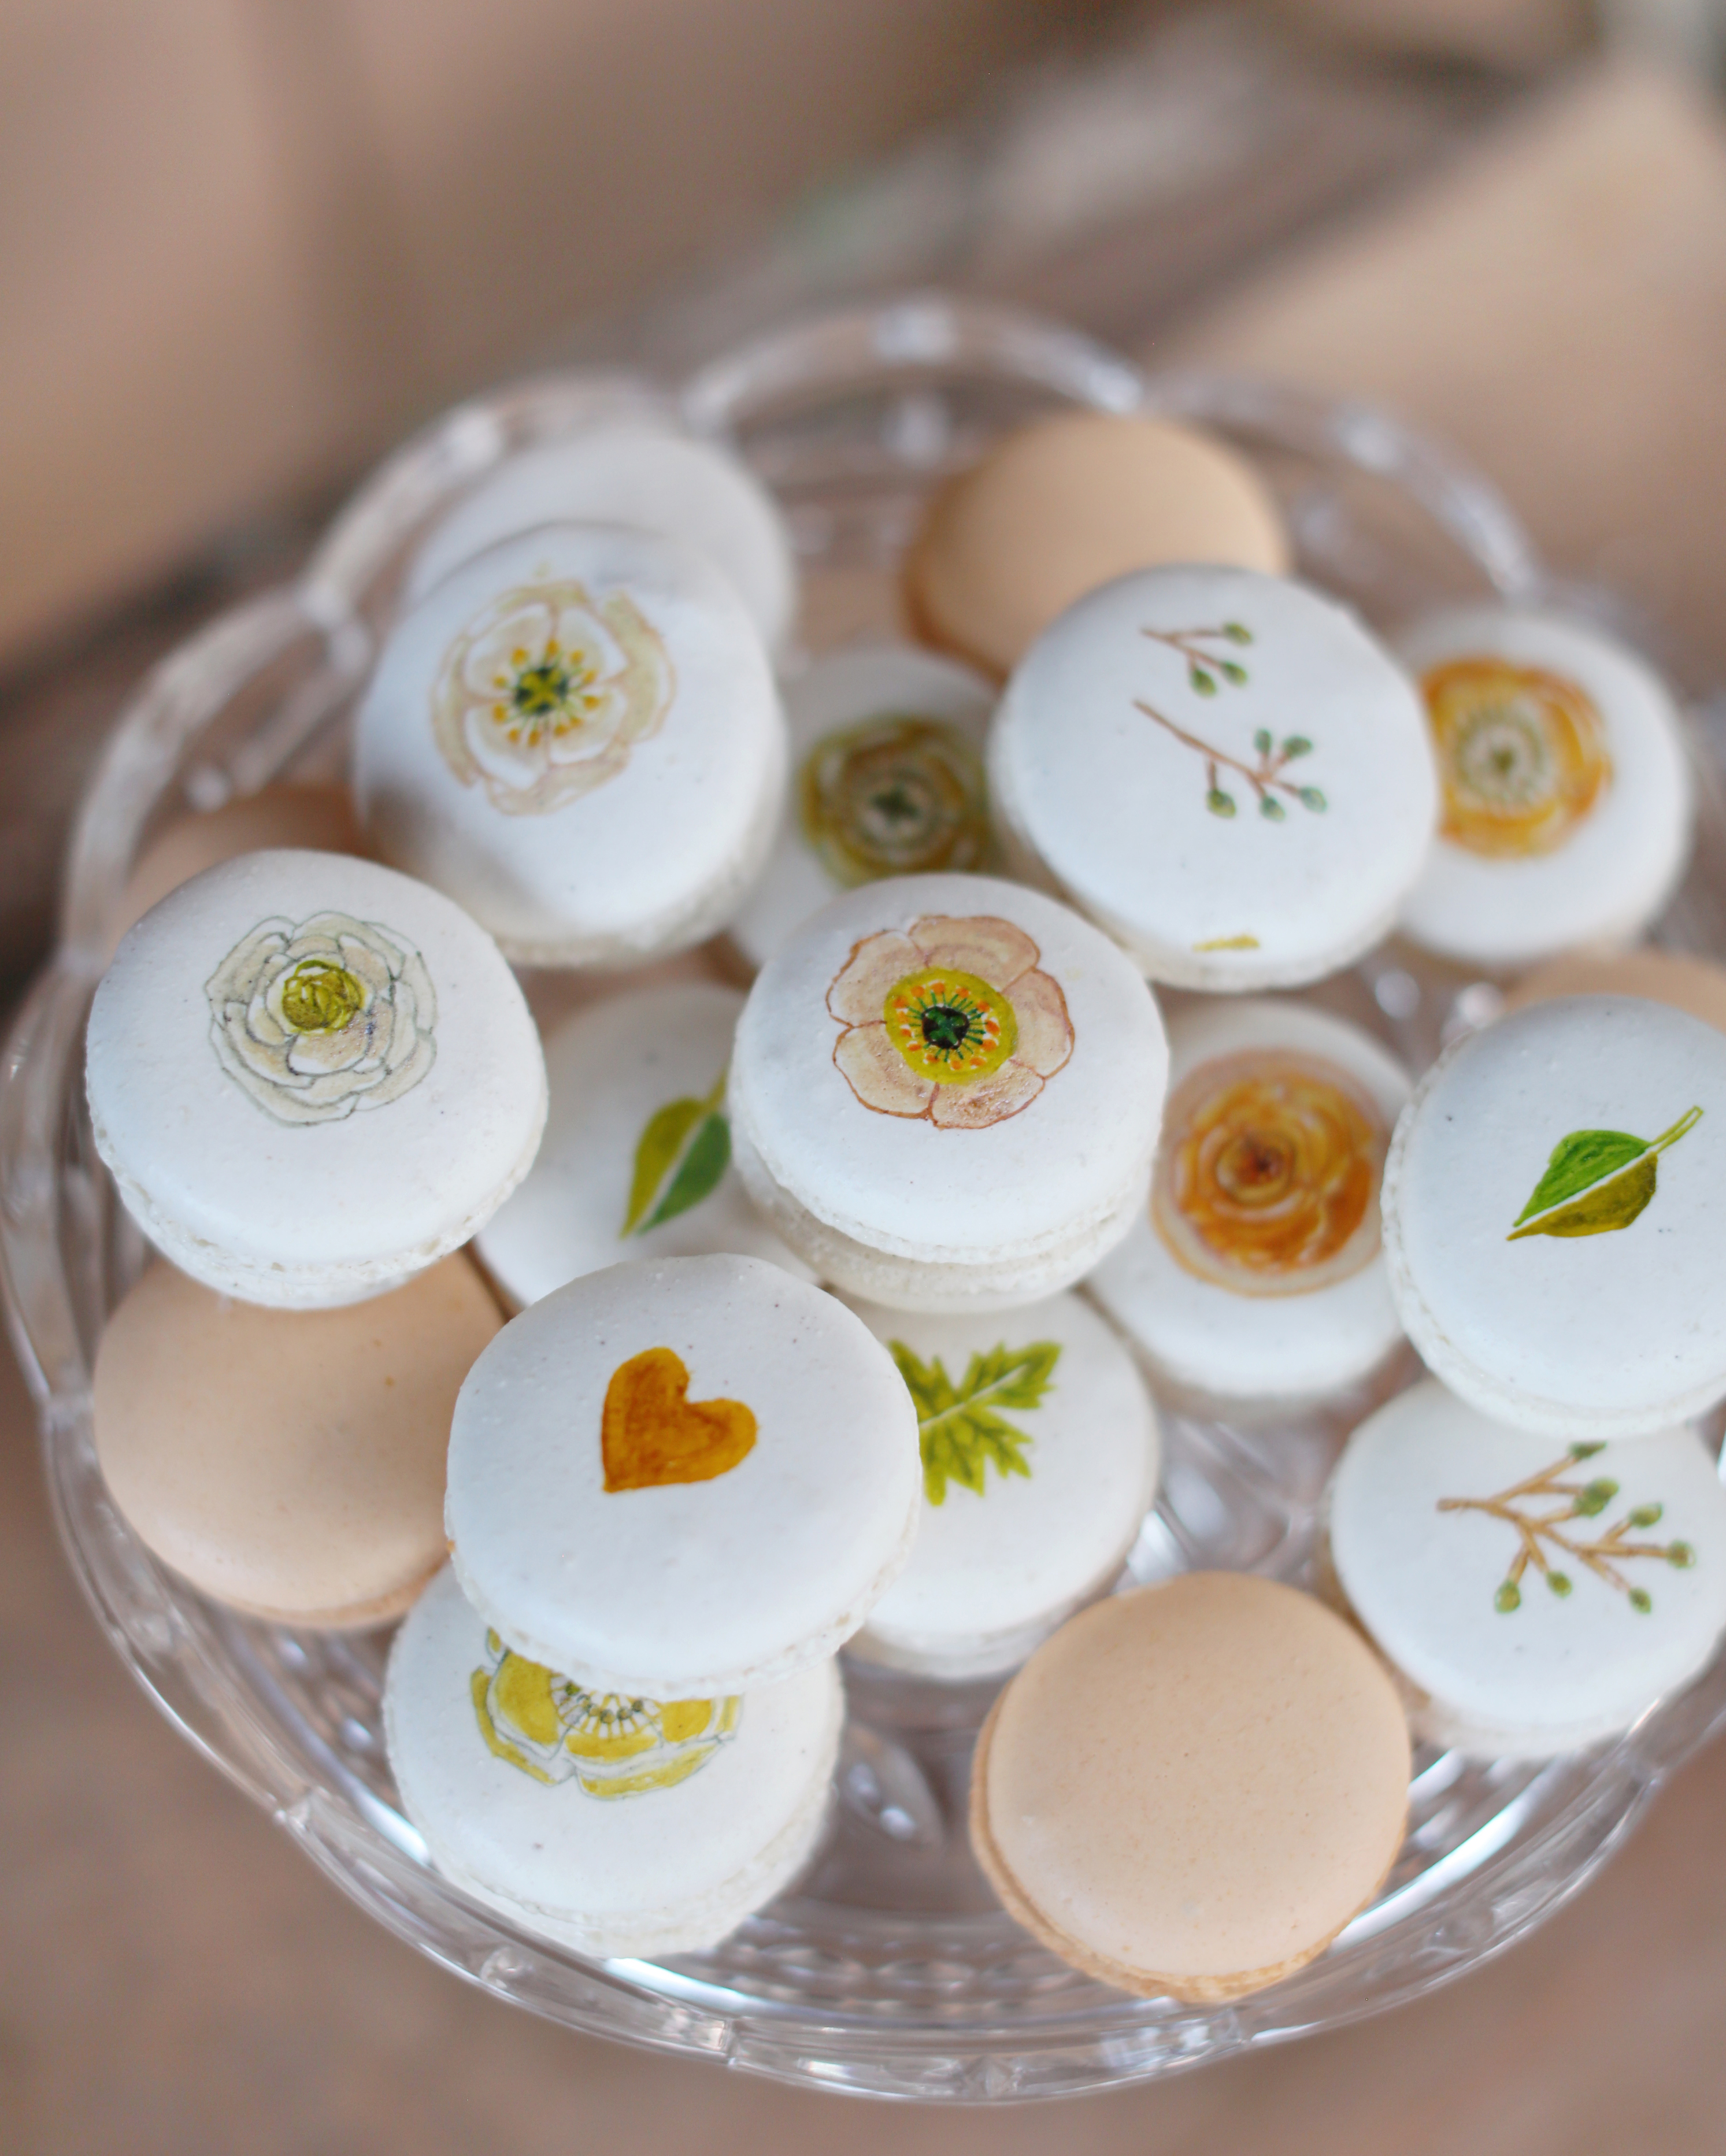 Hand-Decorated Macarons